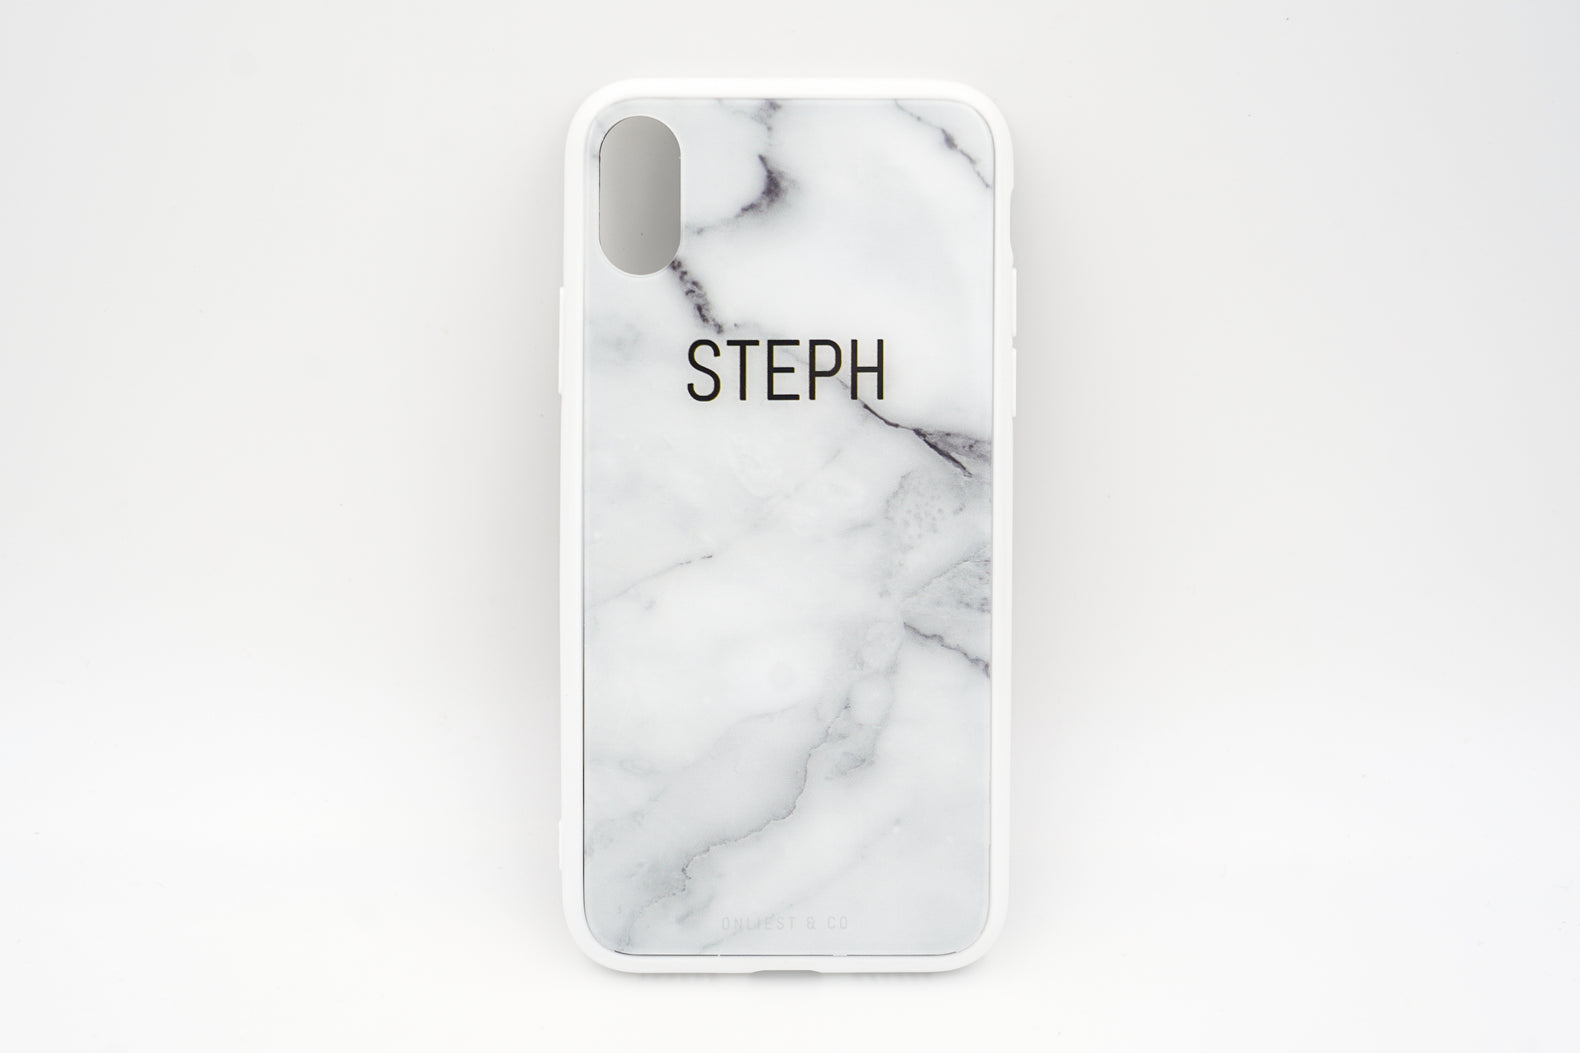 Blanc Marble Case (Glossy Finish) - iPhone